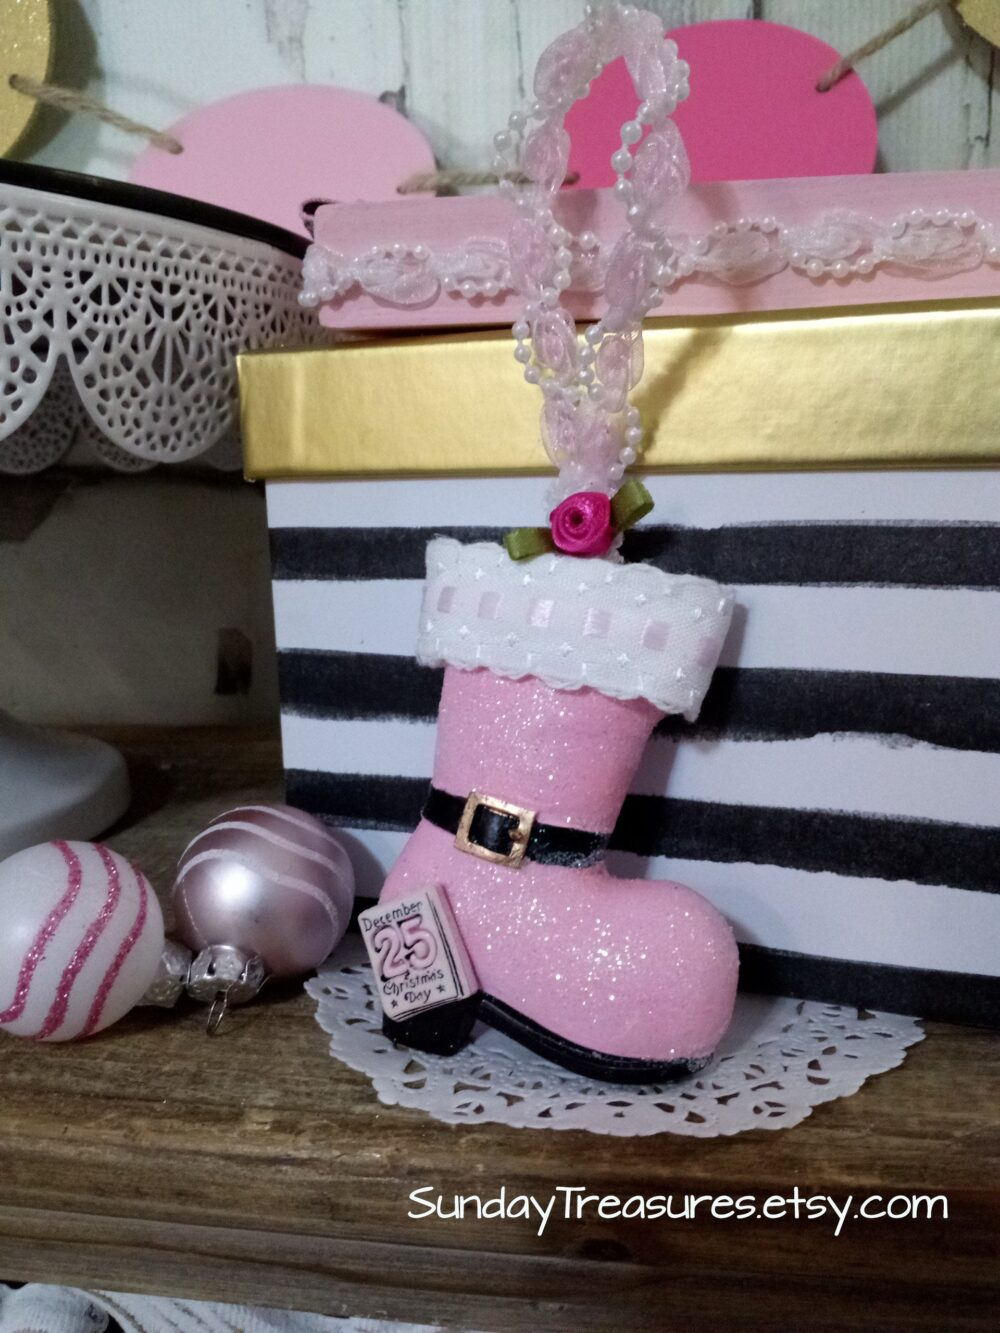 Pink Santa Boot Christmas Ornament/Rose & White Embroidered Lace Trim Romantic Dreamy Pastel Decor